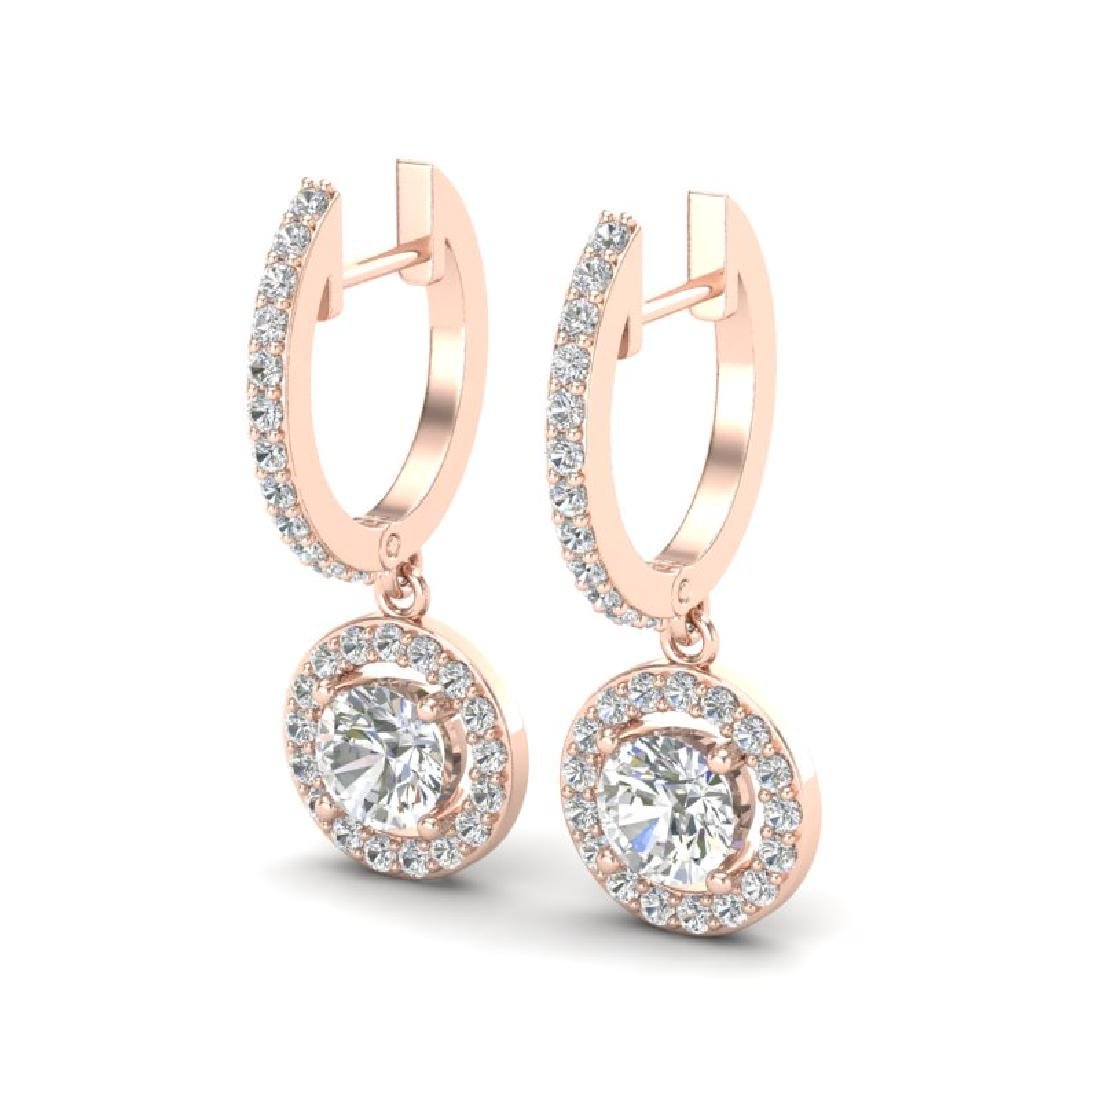 1.75 CTW Micro Pave Halo VS/SI Diamond Earrings 14K